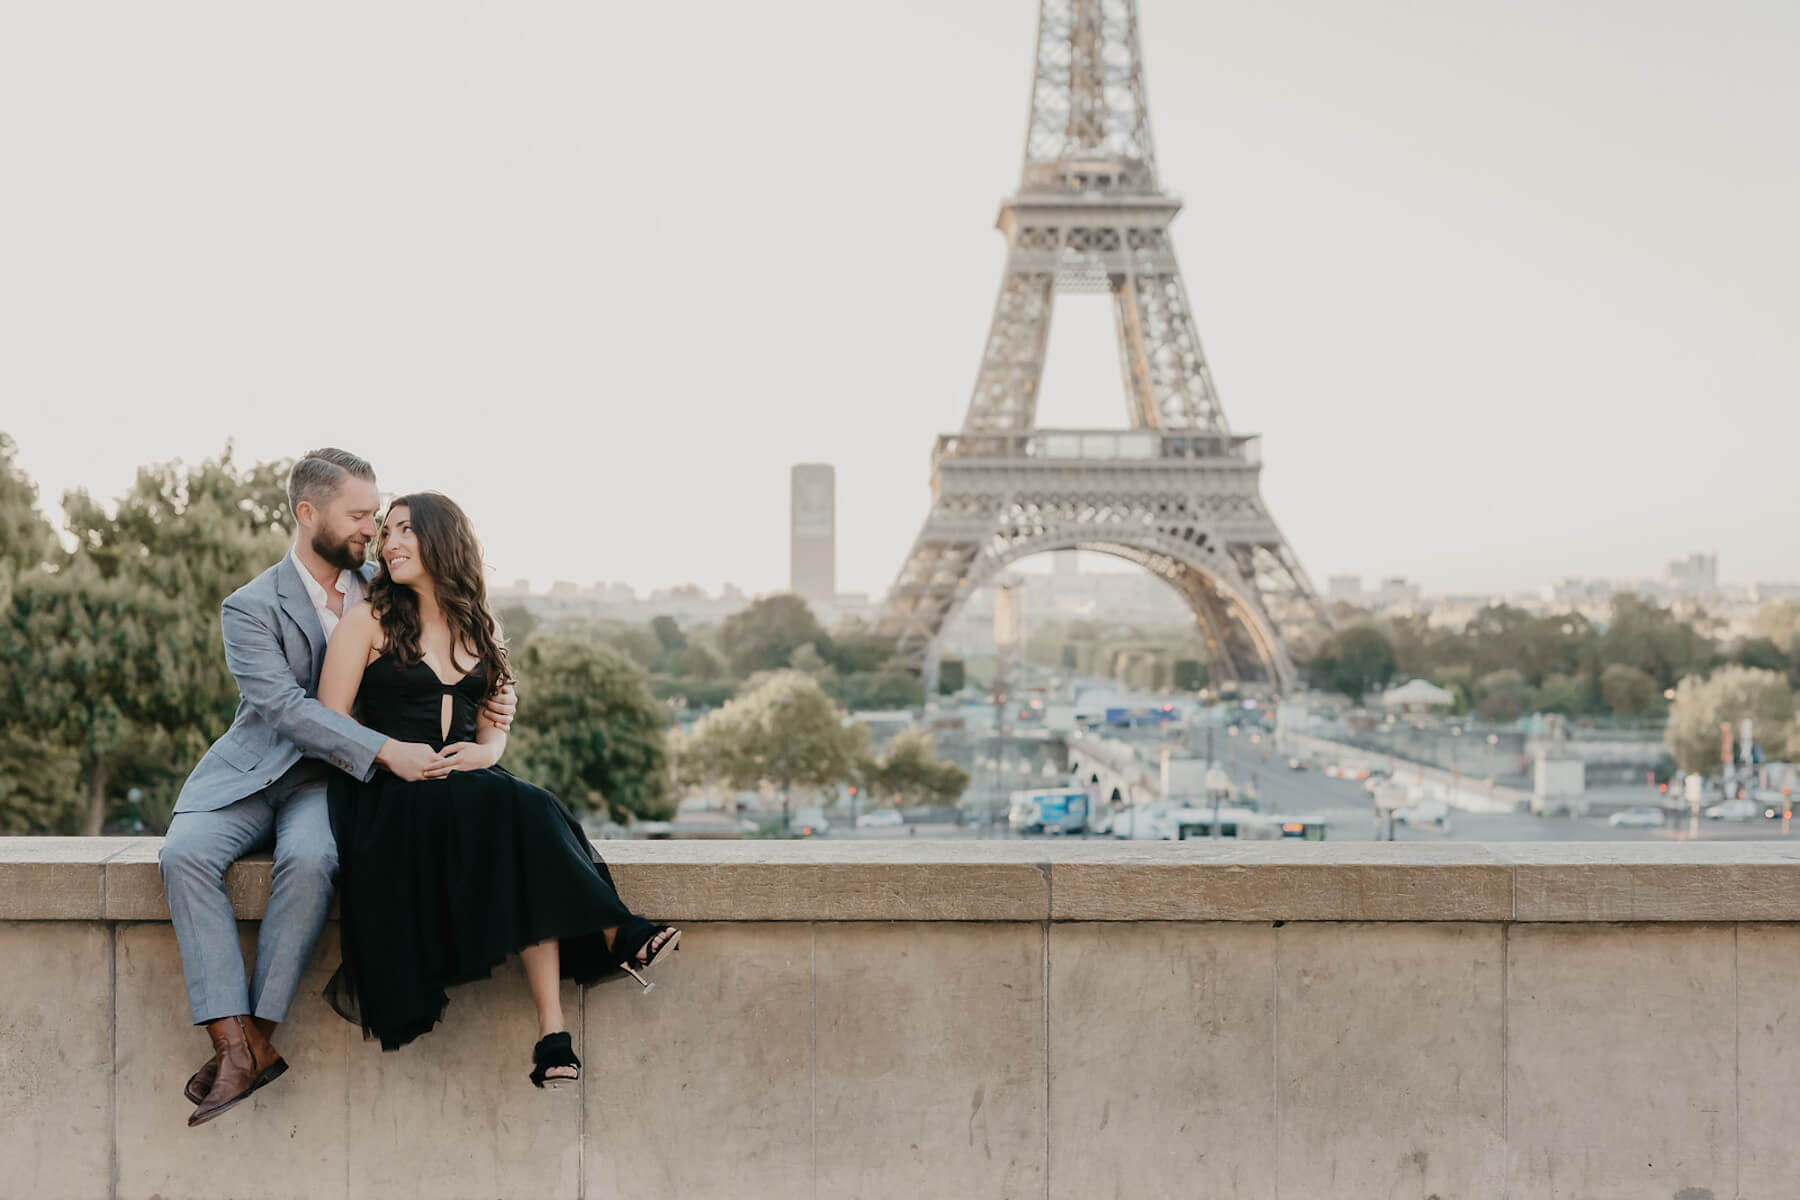 couple sitting in front of the Eiffel Tower in Paris, France